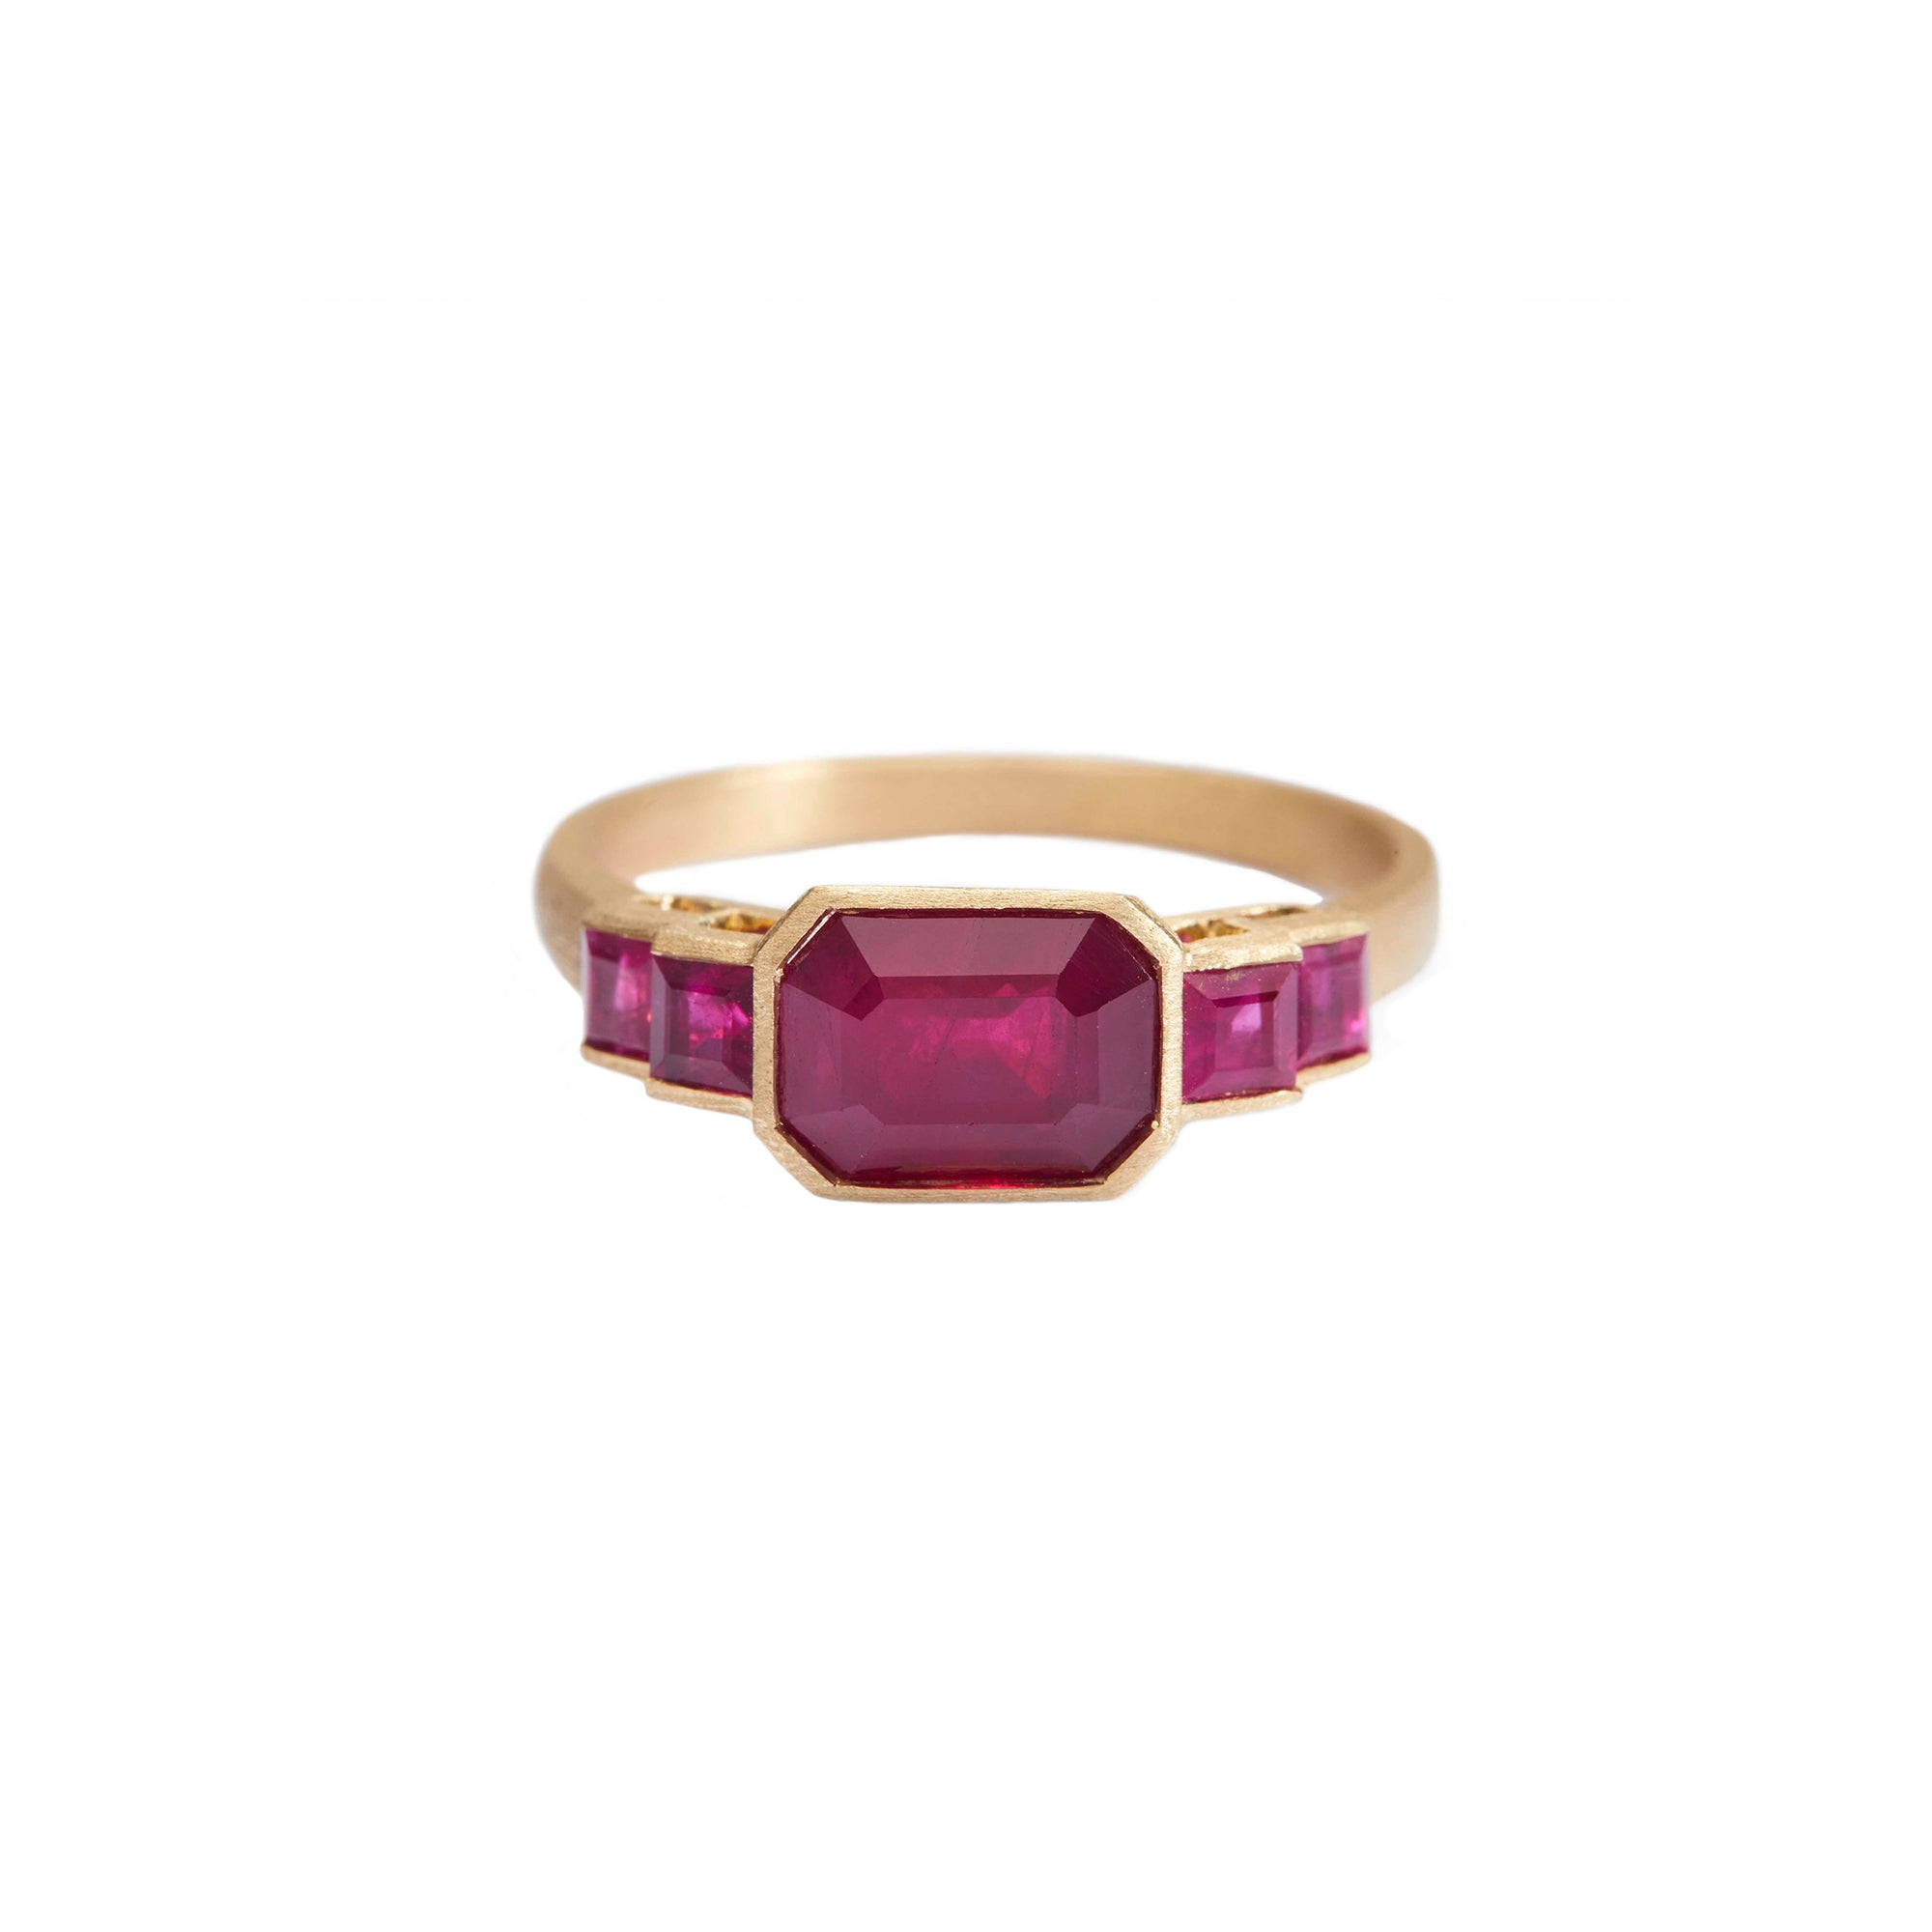 Five Rubies Ring by Yi Collection for Broken English Jewelry